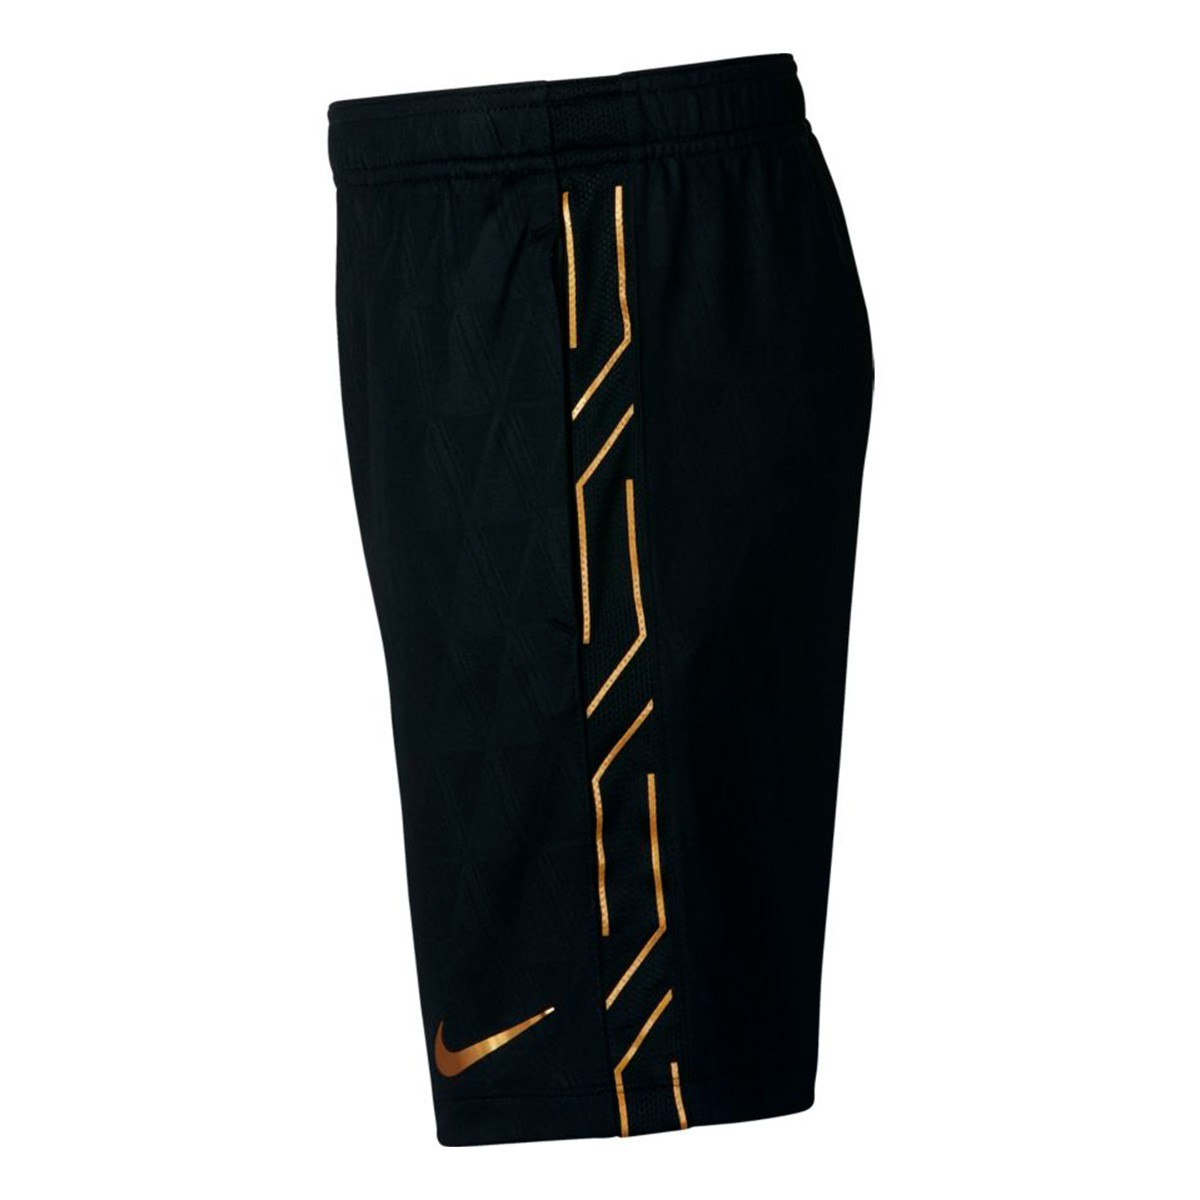 89e65d989c8f Shorts Nike Kids Dry Academy CR7 Black-Metallic gold - Football store  Fútbol Emotion